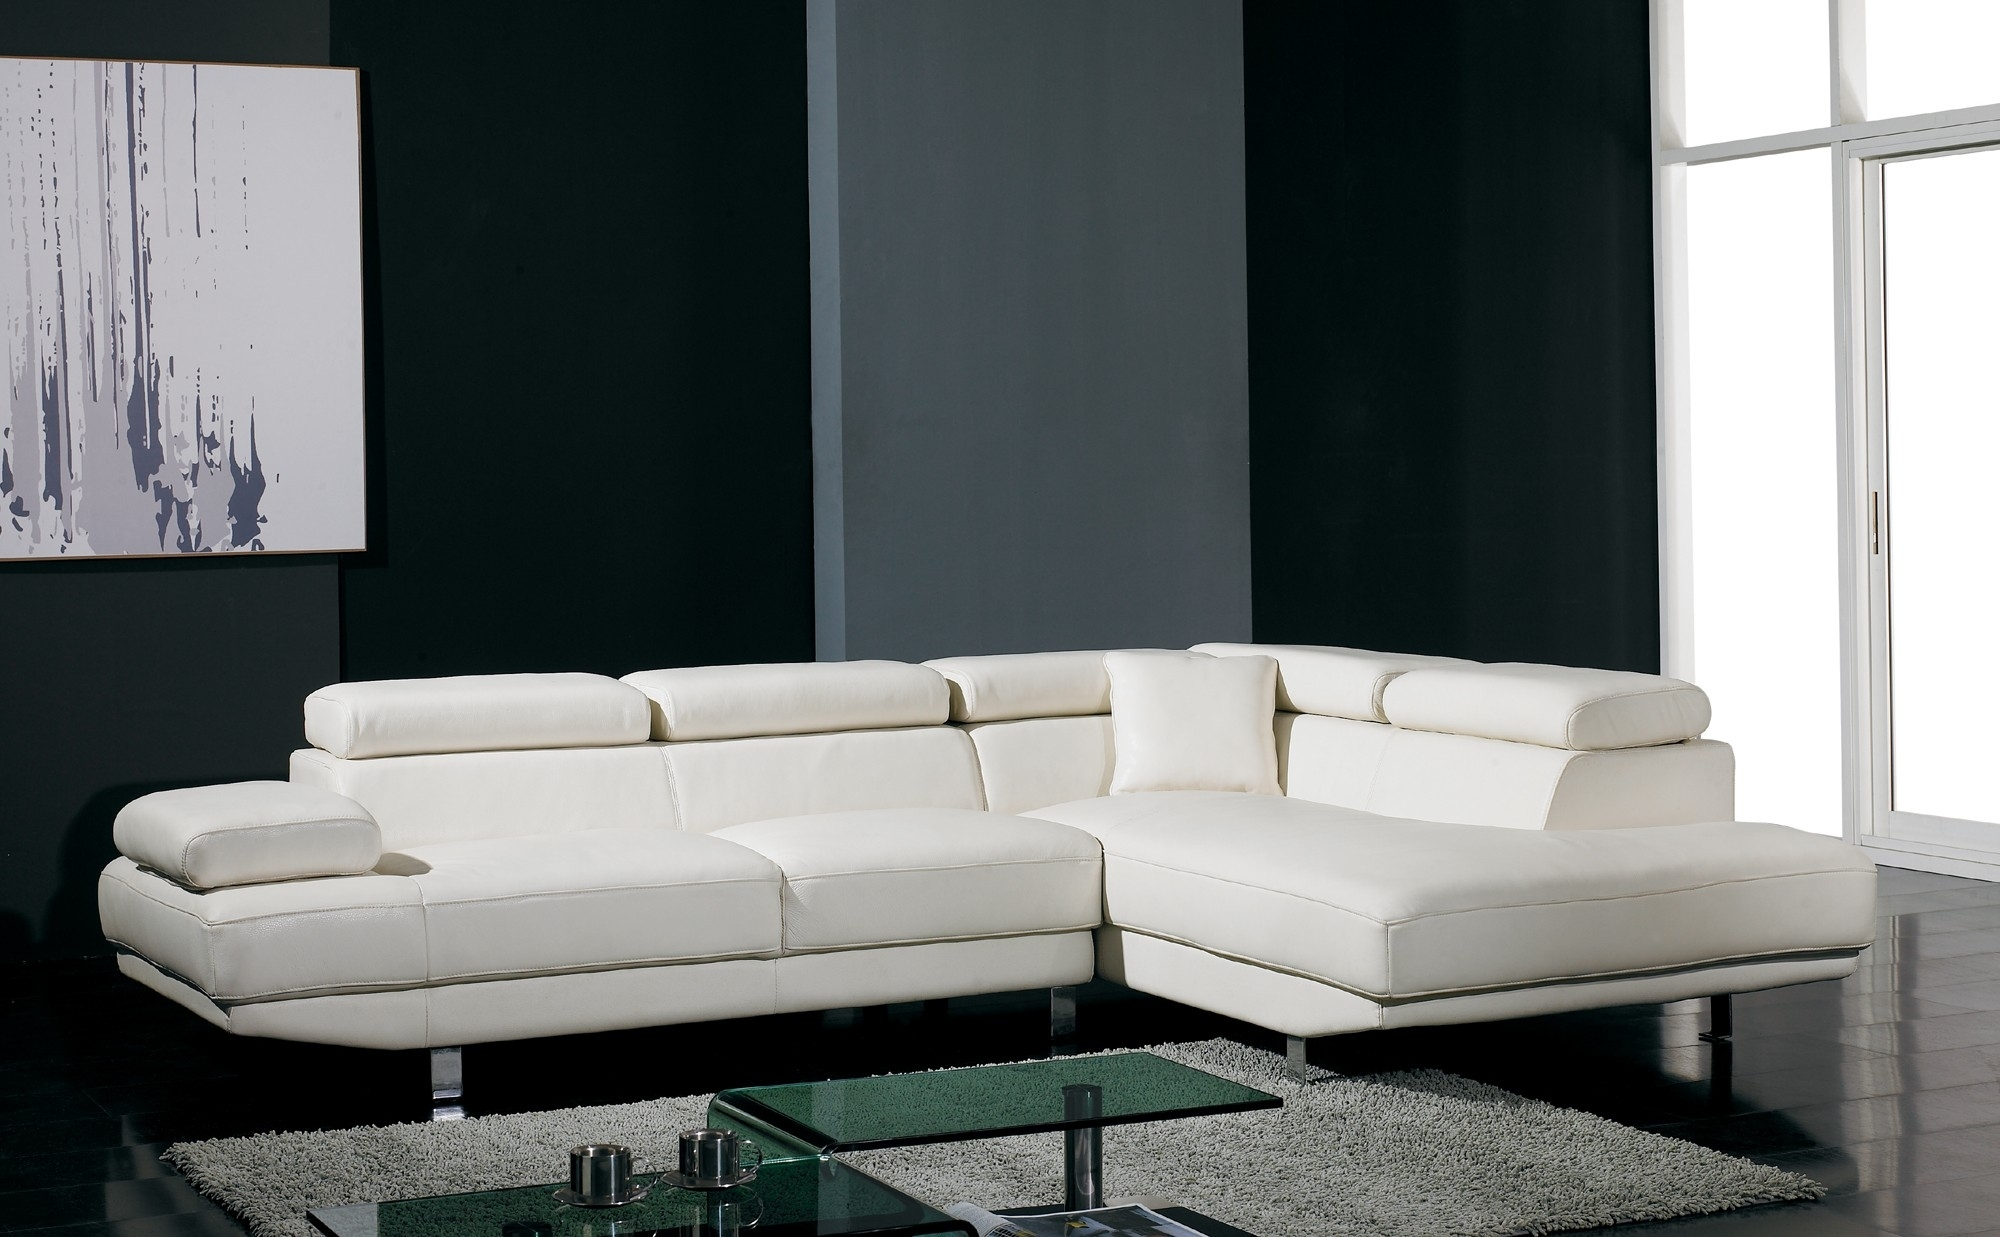 Contemporary Sectional Couch Contemporary Leather Recliner Sofa for Contemporary Sectional Sofas (Image 4 of 15)